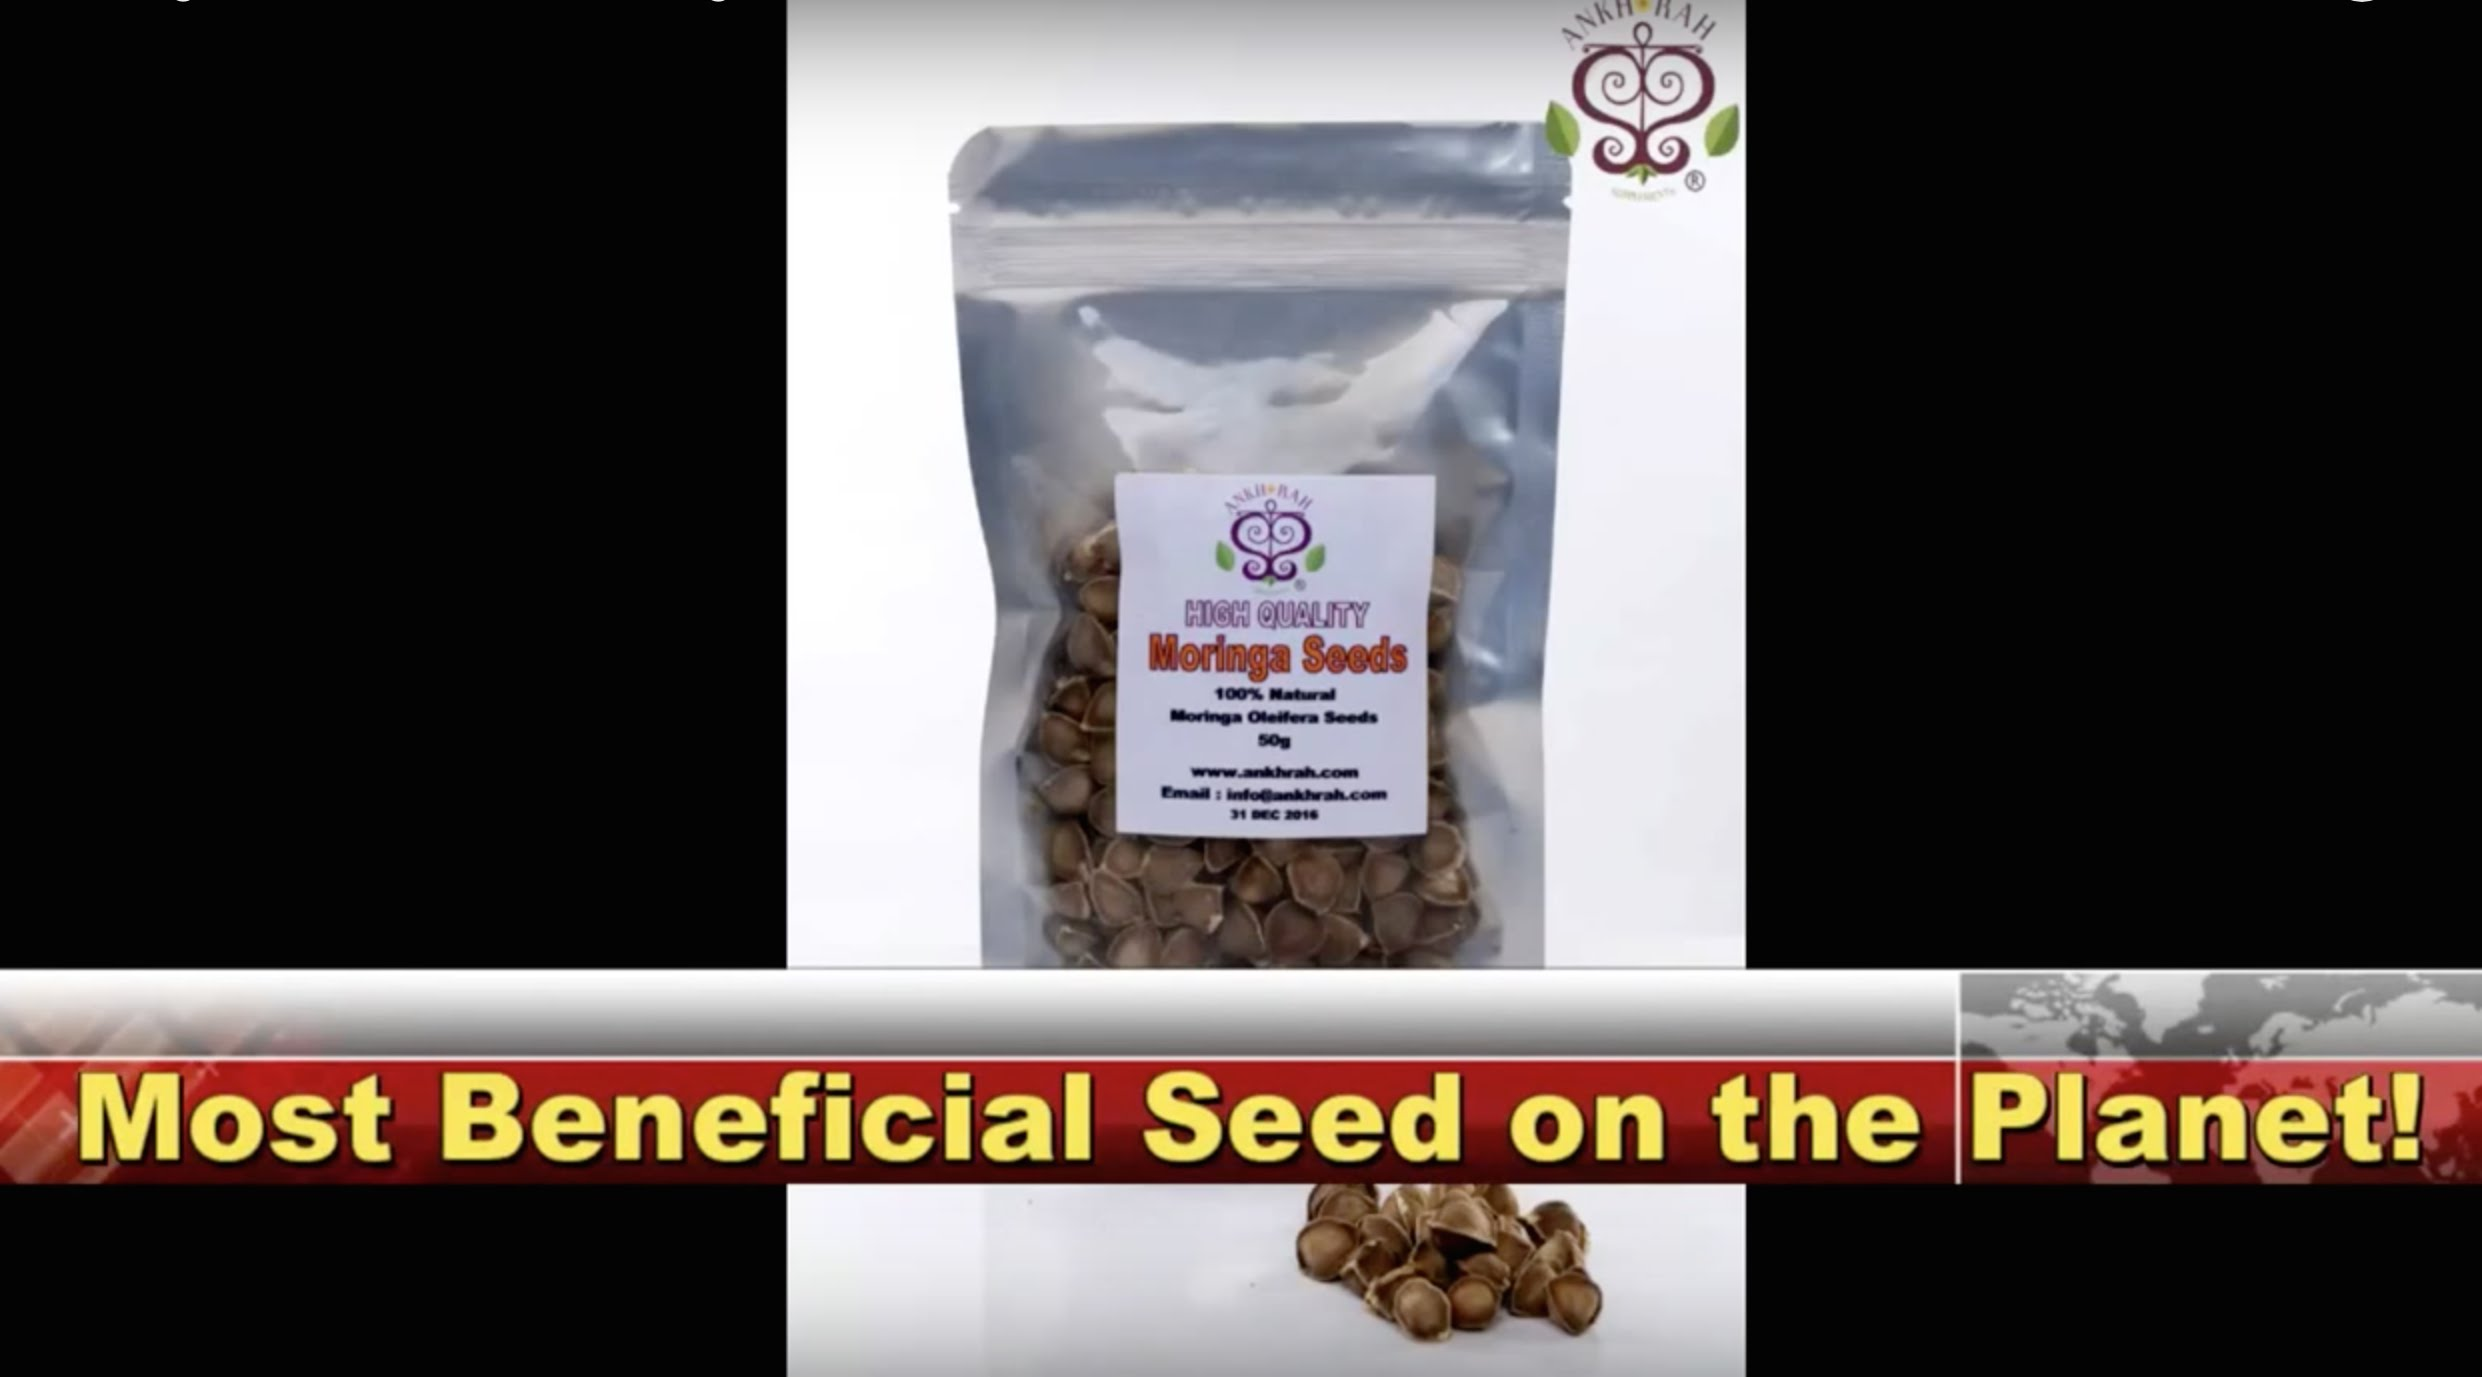 Customers response to tasting a moringa seed for the first time!